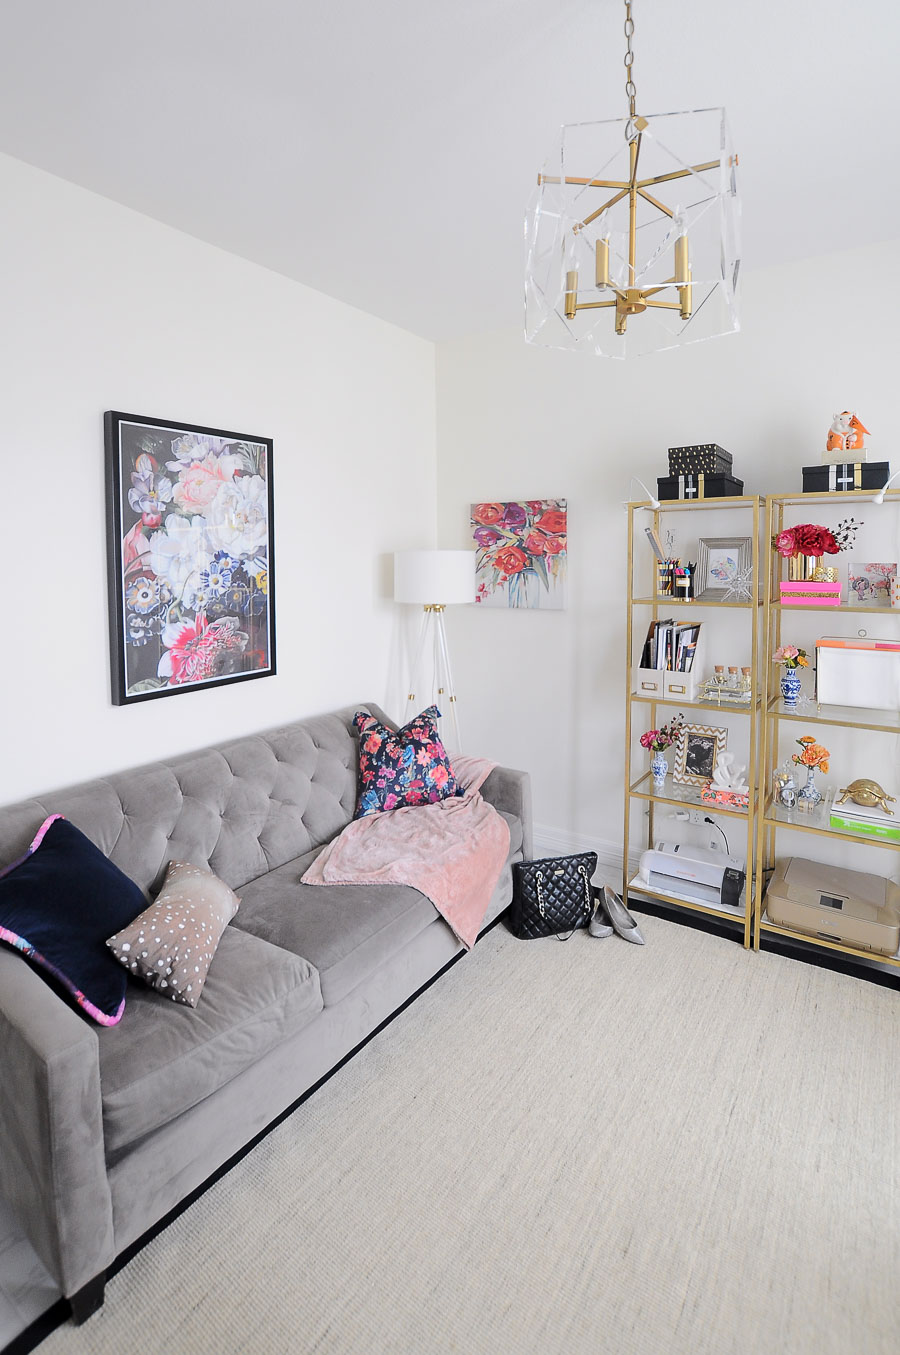 A gray tufted sofa in a feminine and chic home office space with tons of florals.